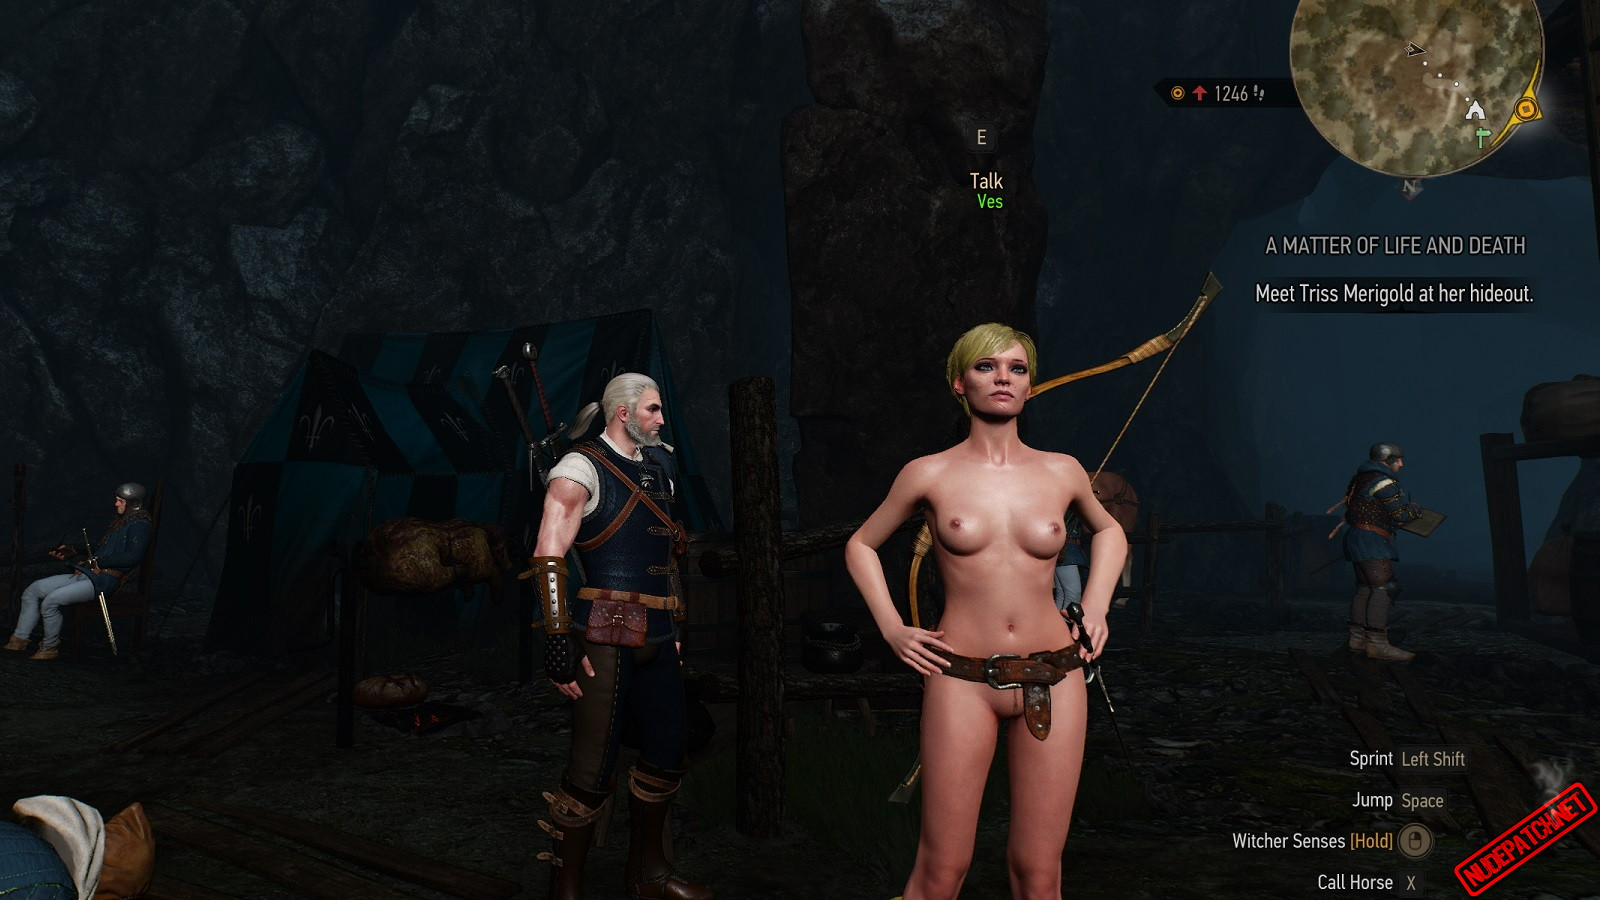 The Witcher 3 Nude Ves